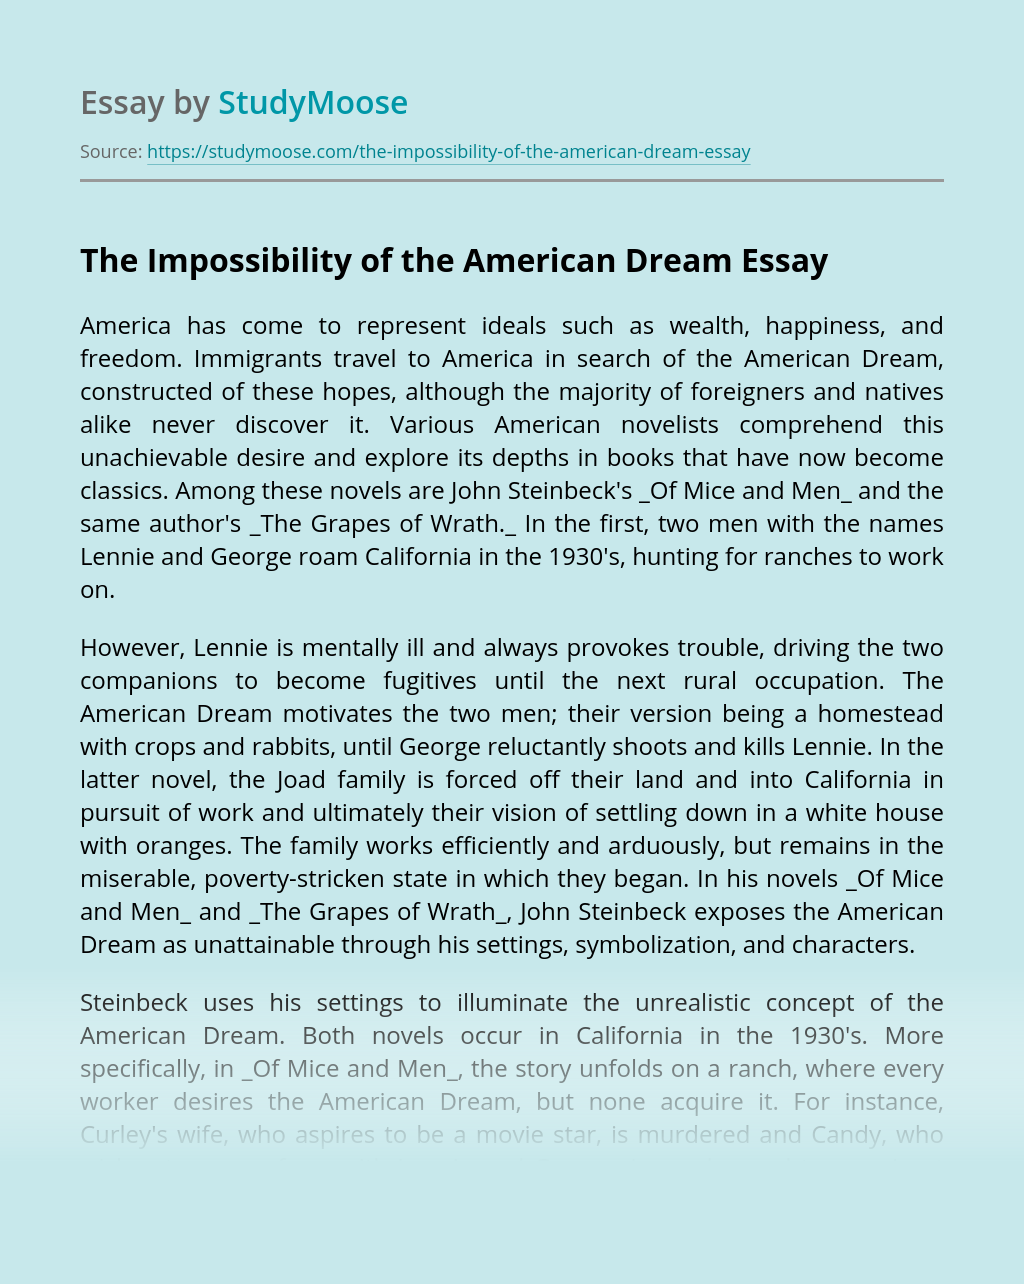 The Impossibility of the American Dream